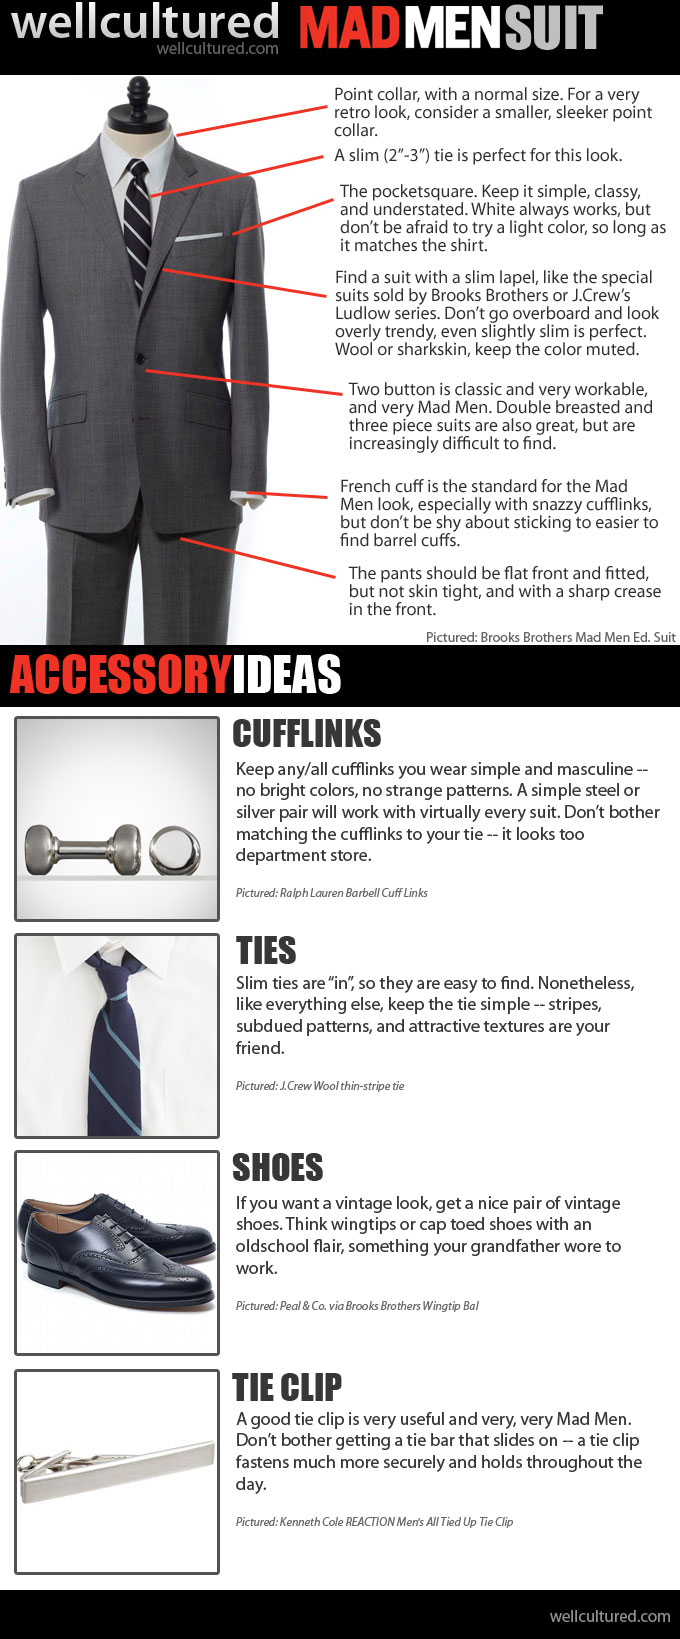 The Well Cultured Mad Men Style guide